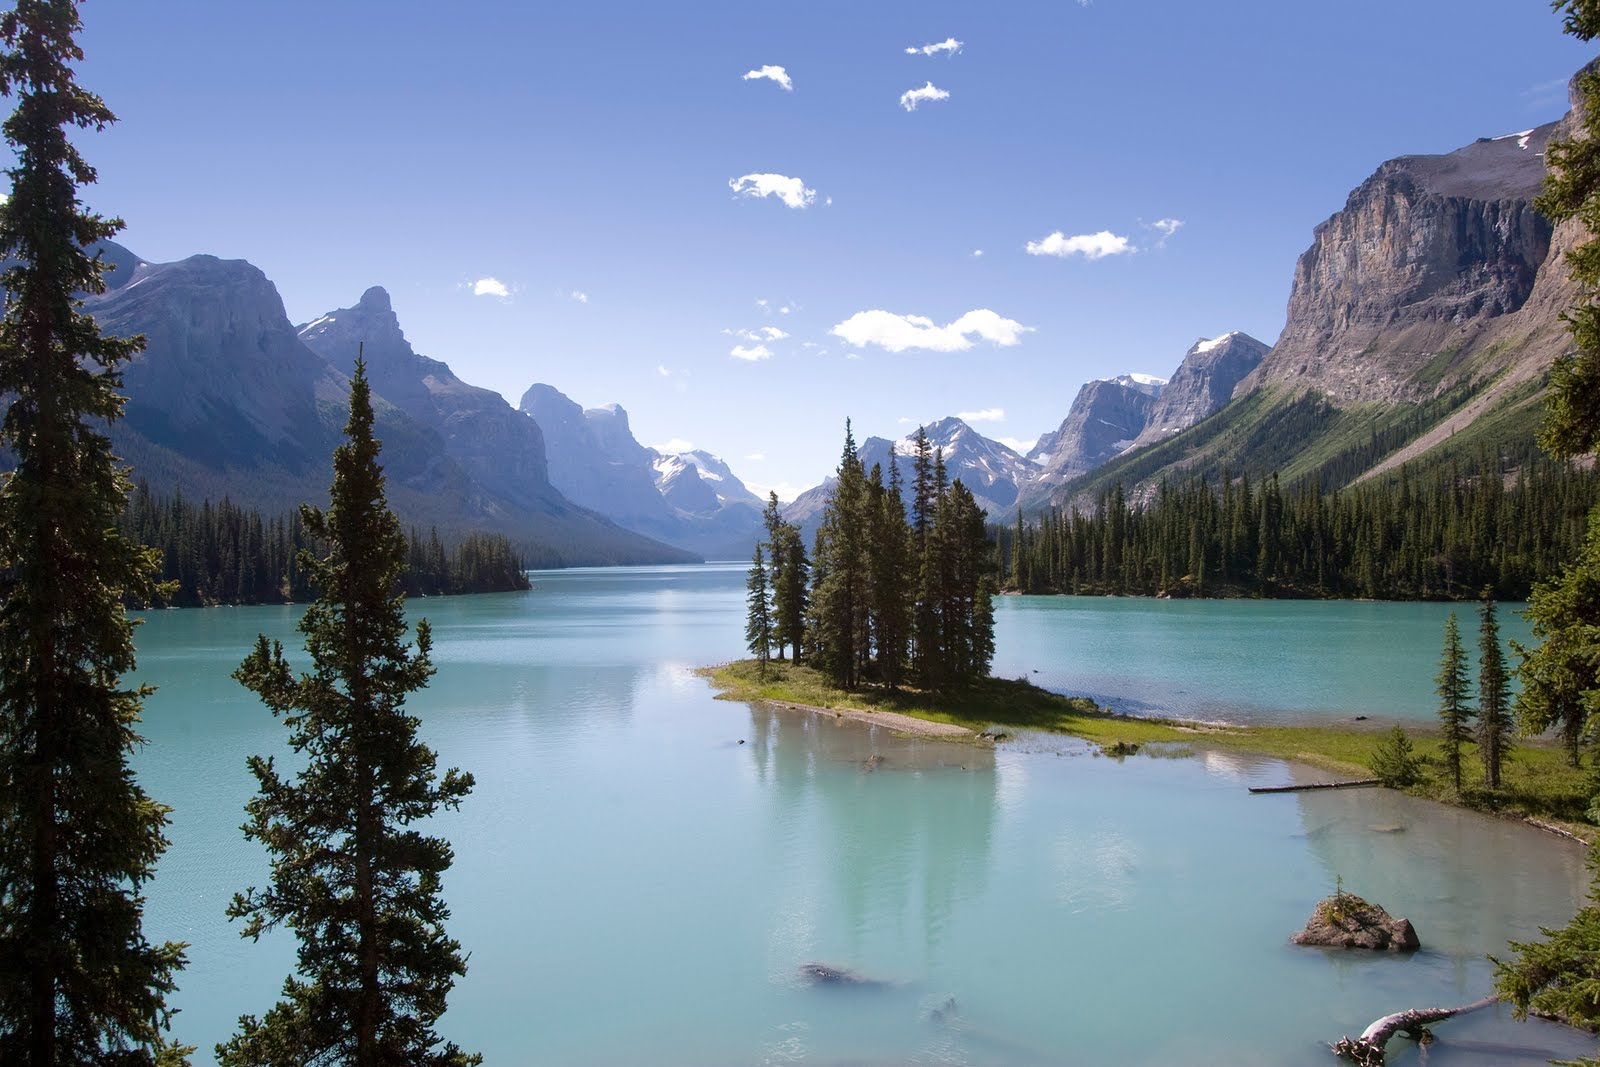 White Mountain Photography News The Canadian Rocky Mountains